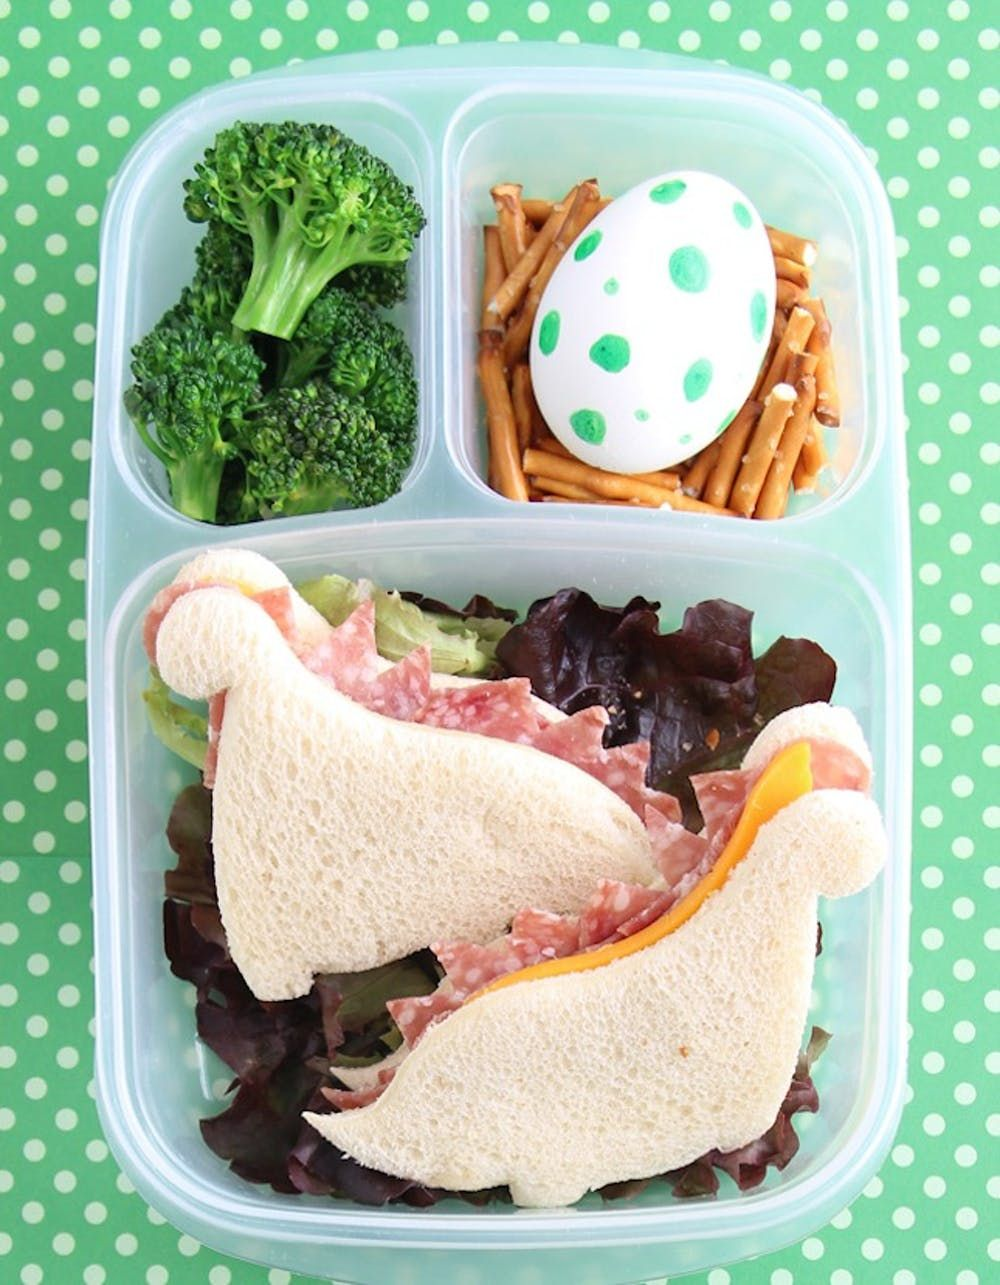 12 of the Best Bento Box Lunch Ideas for Kids #bentoboxlunch